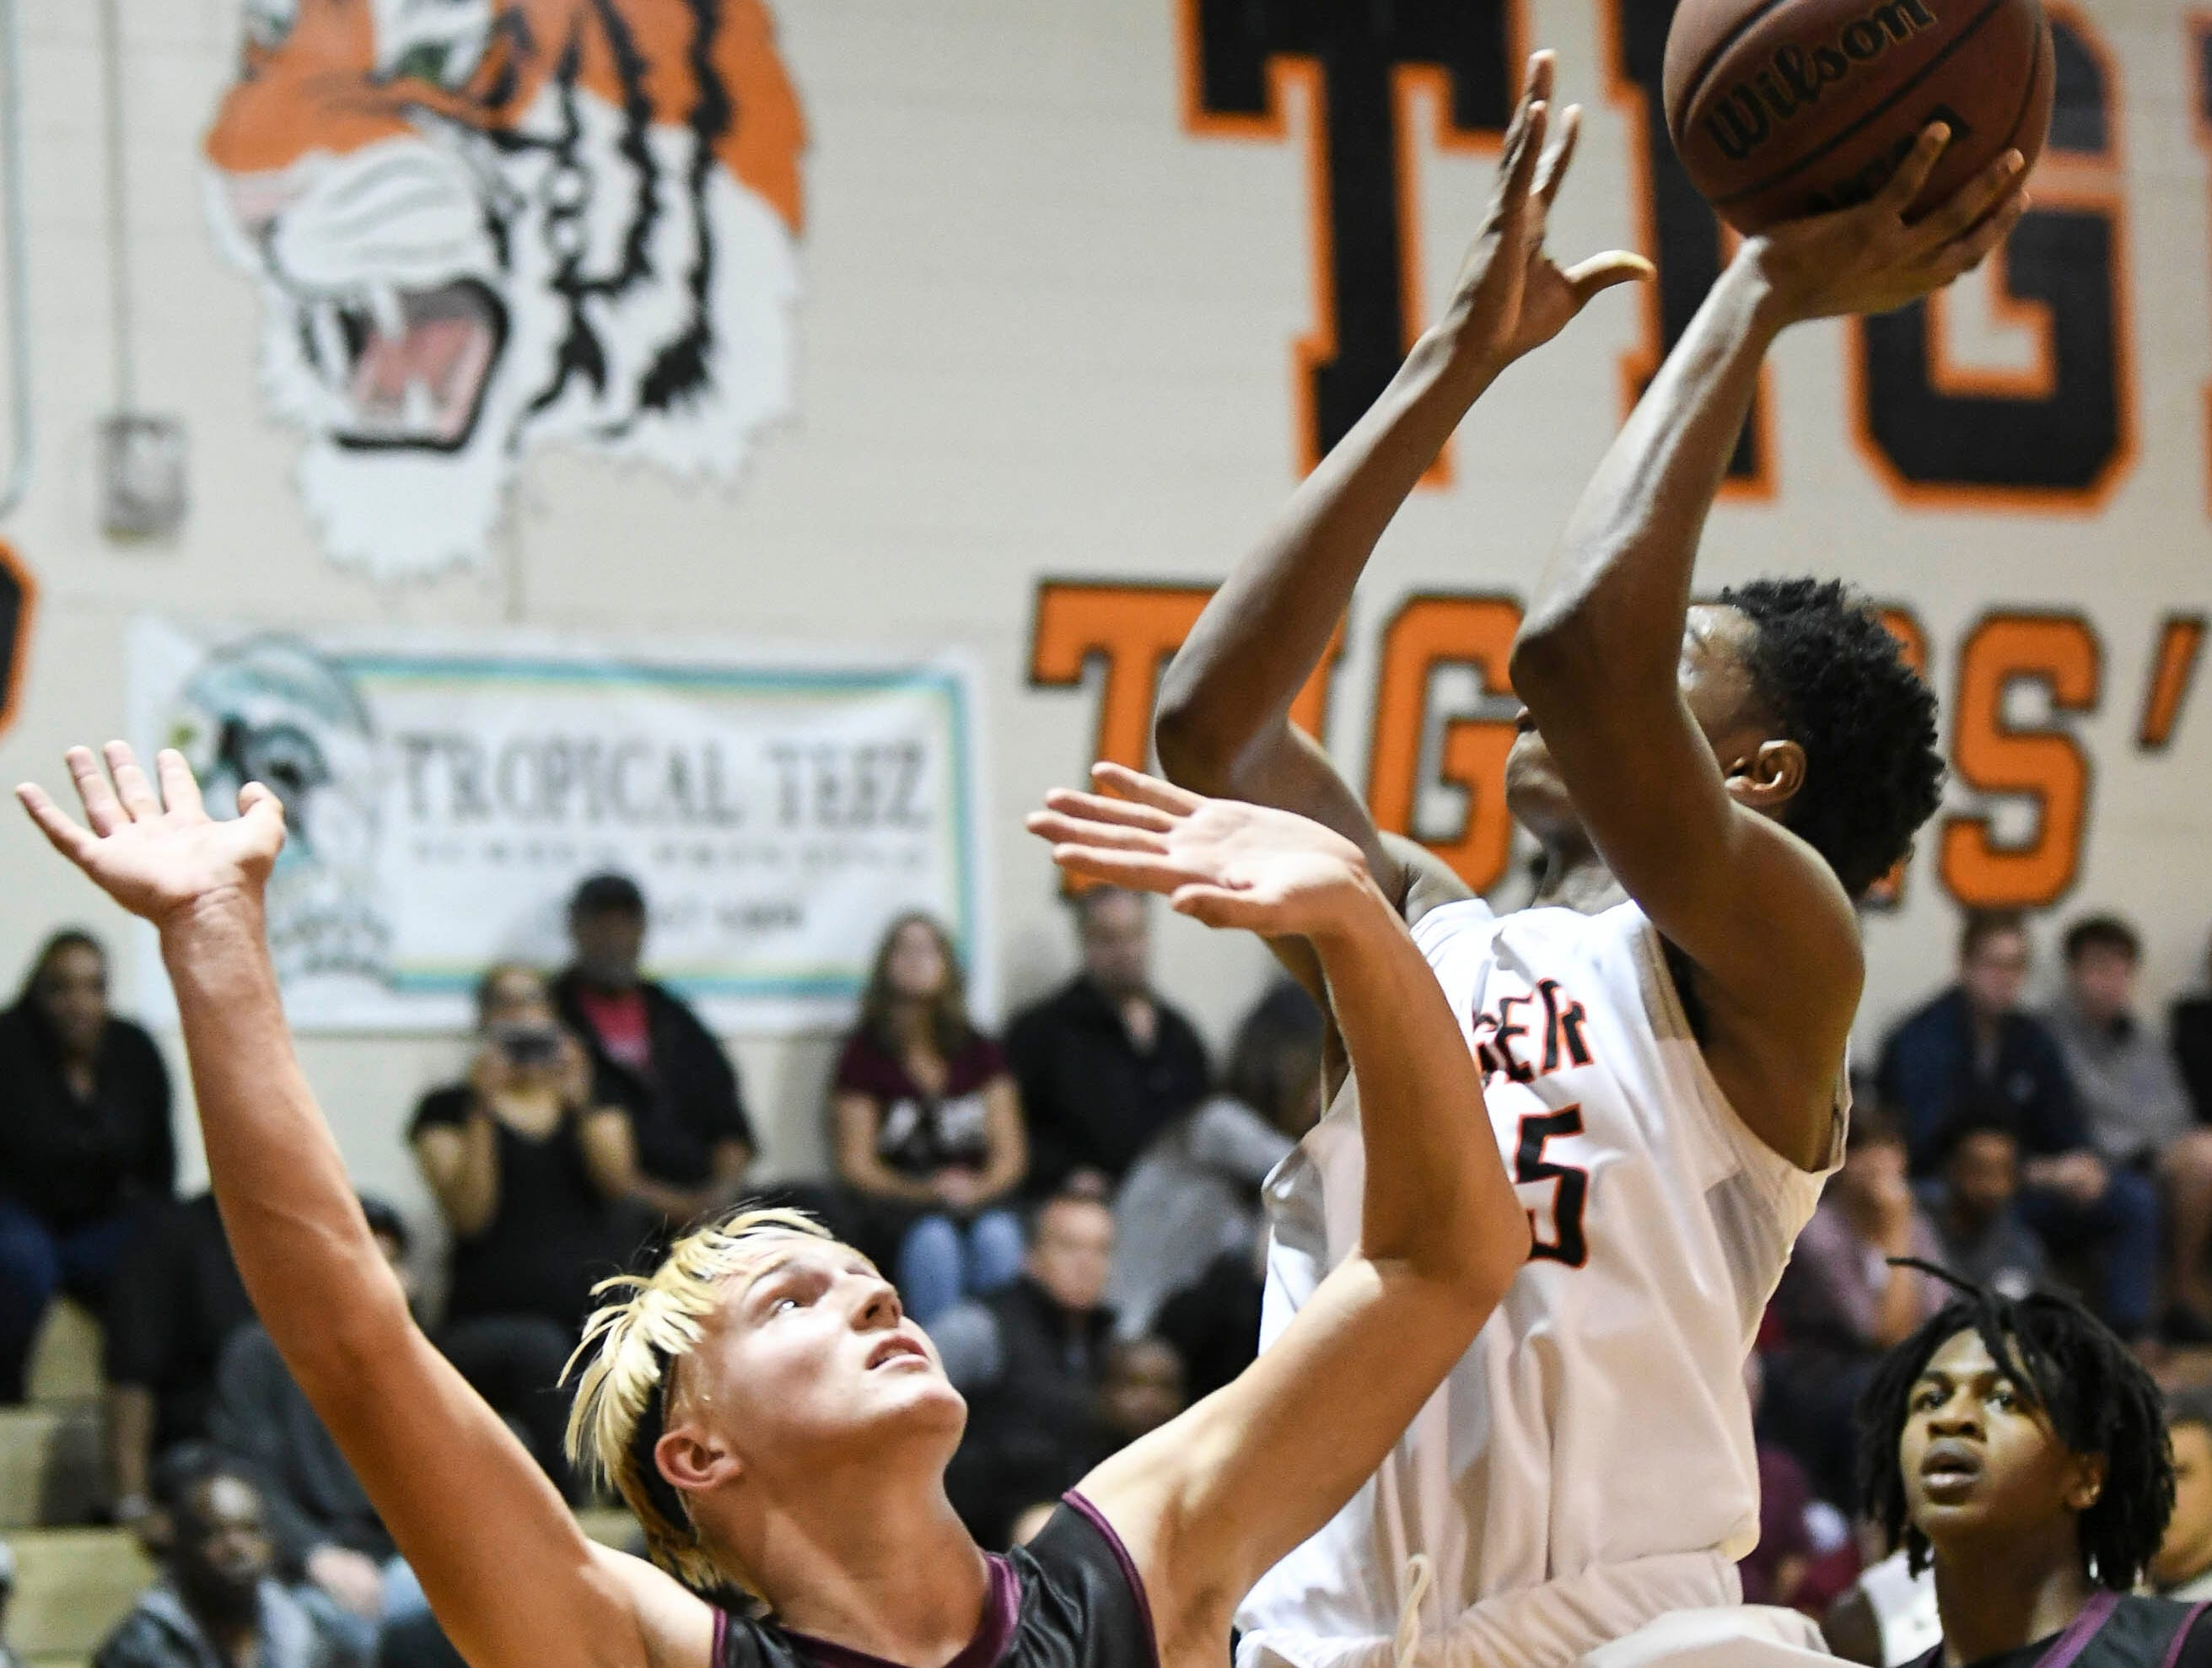 K Parker of Cocoa shoots over Thomas Waldron of Astronaut during Tuesday's game.